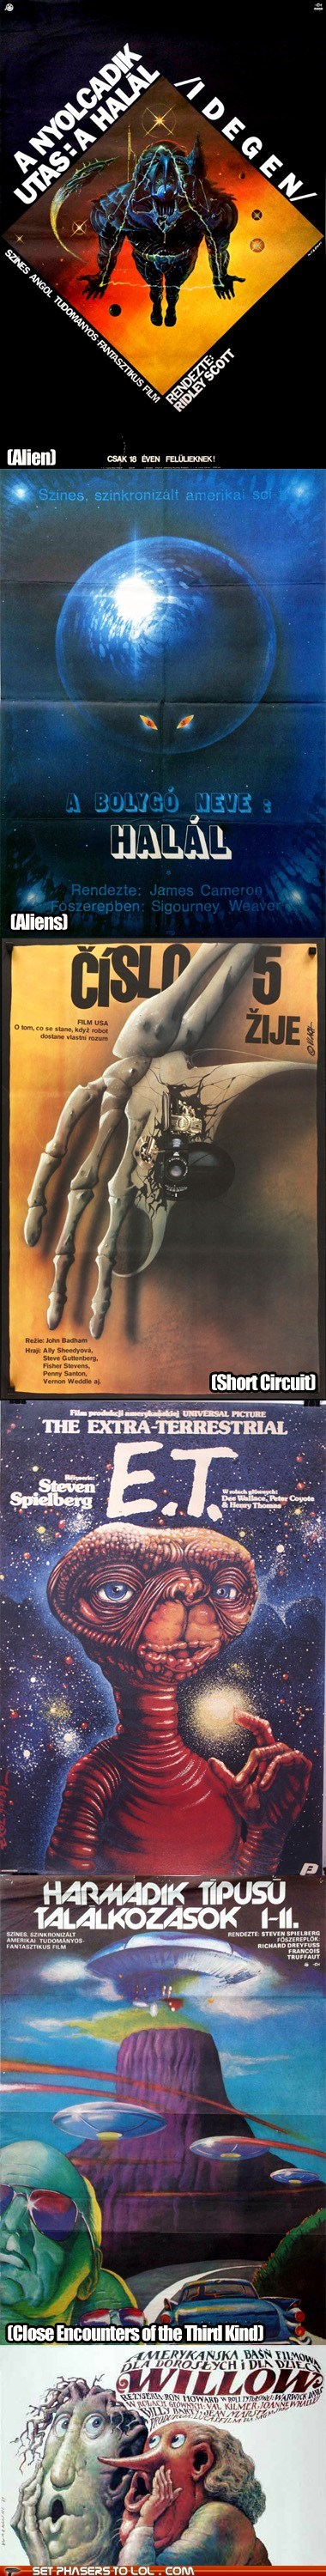 alien Aliens Close Encounters of the T Close Encounters of the Third Kind E.T foriegn movie posters science fiction short circuit weird willow - 6568064000